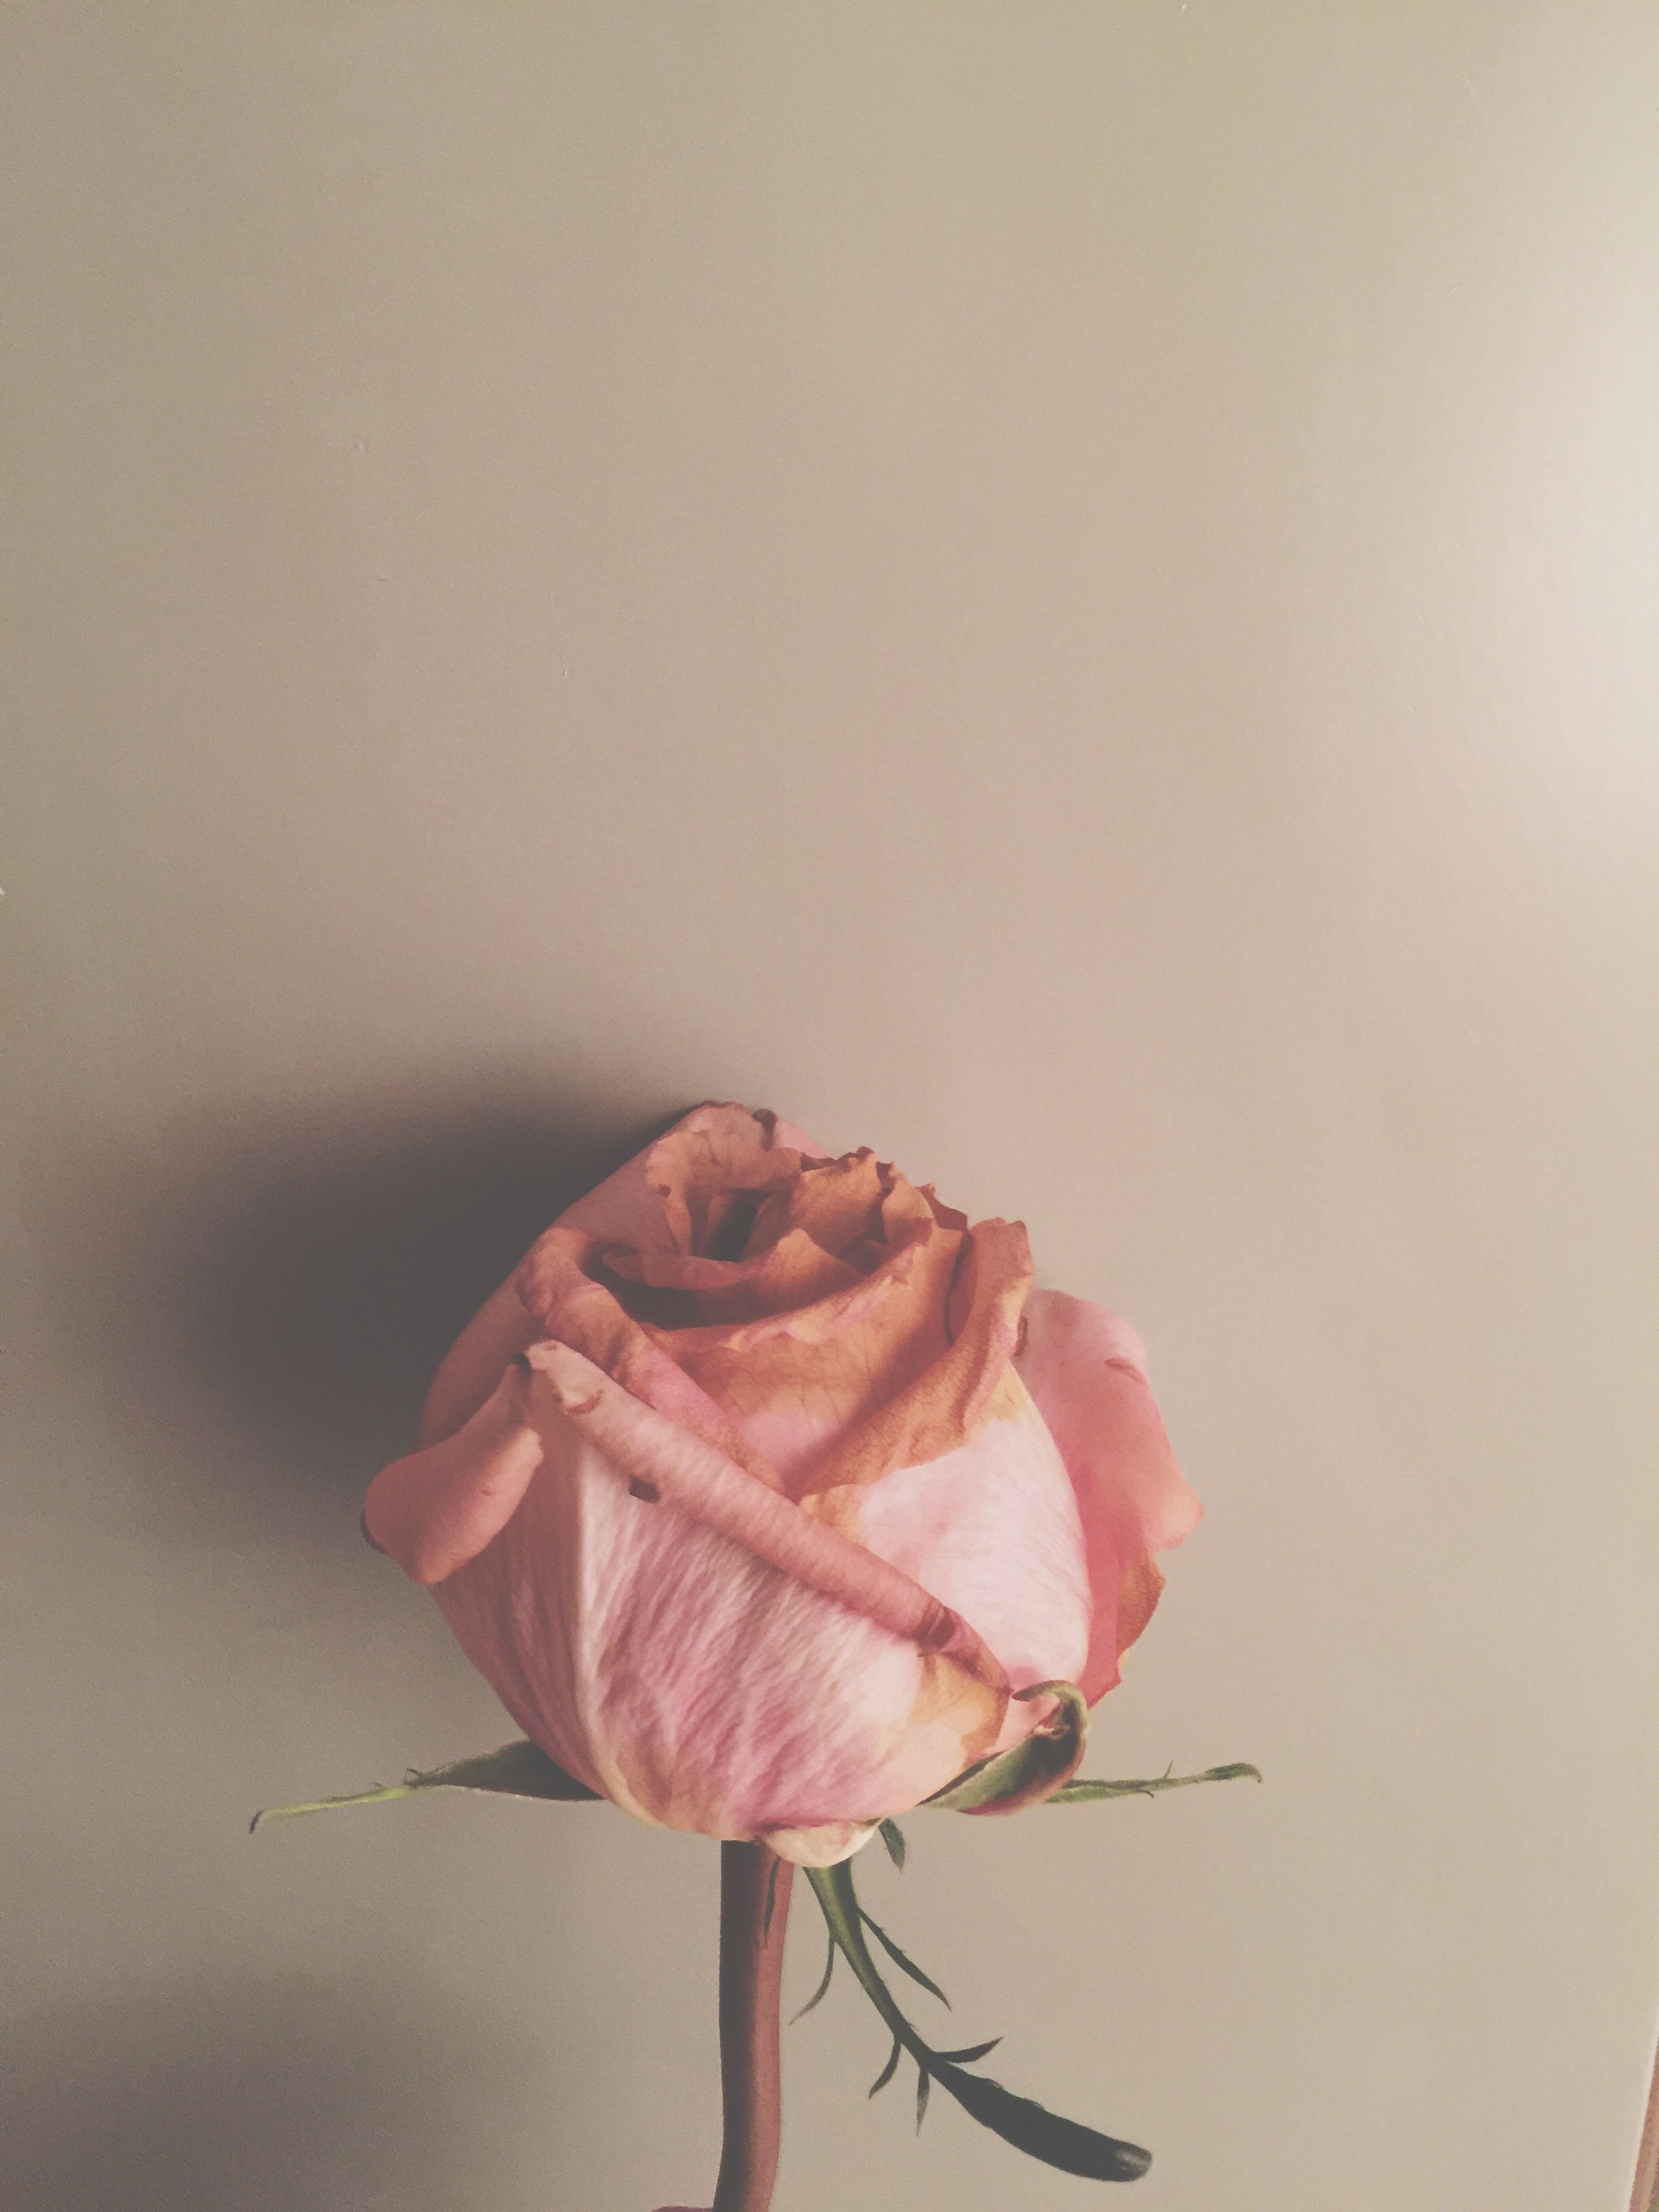 flower, petal, fragility, close-up, rose - flower, freshness, flower head, single flower, stem, copy space, nature, studio shot, beauty in nature, focus on foreground, rose, wall - building feature, plant, dry, pink color, no people